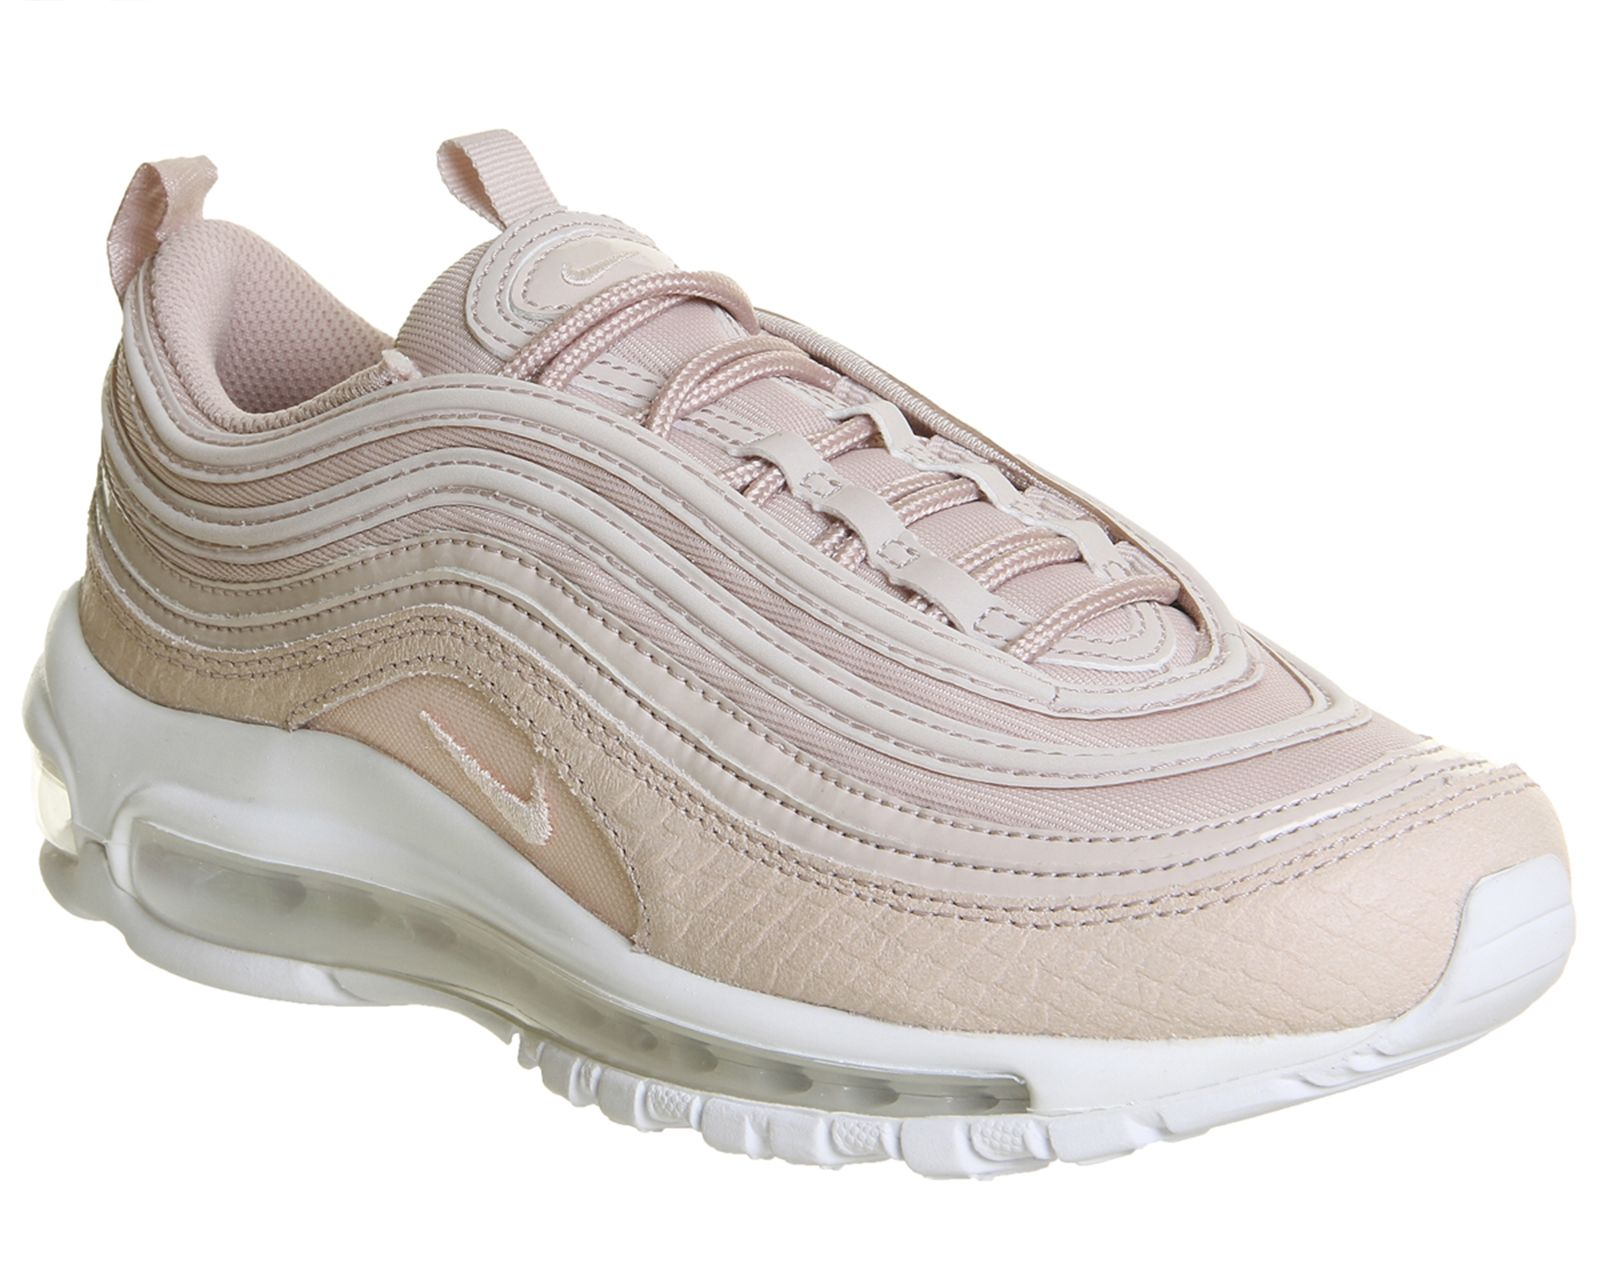 nike air max office. Nike Air Max 97 Silt Red Prm £145.00 Office